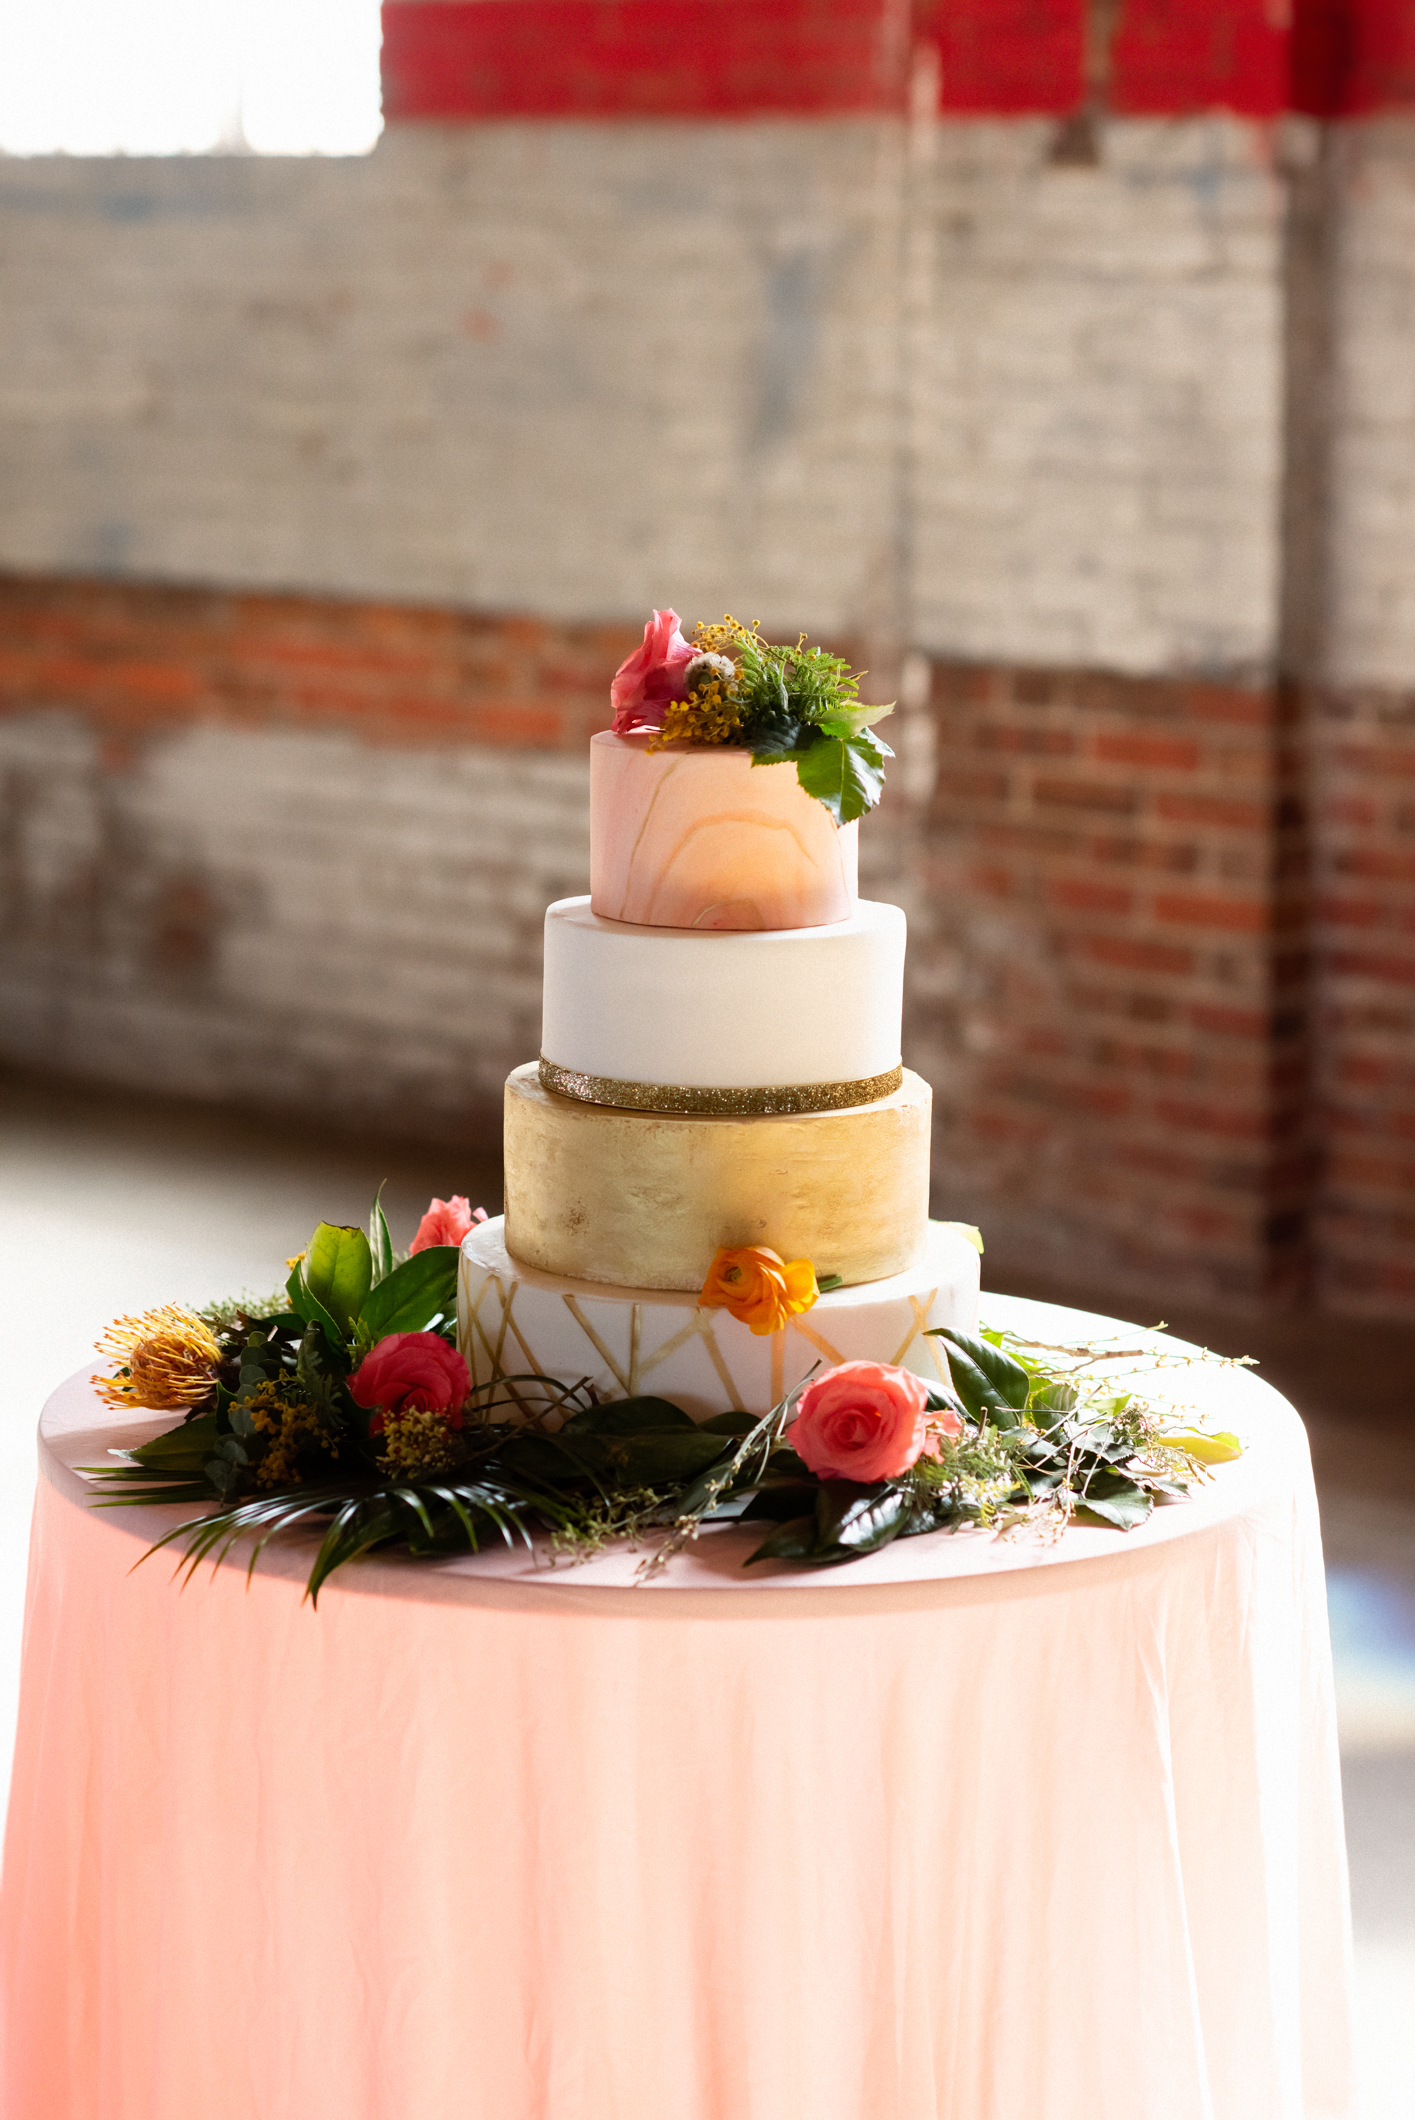 Cake by Southern Couture Cakes, Floral by Johnson Florist, Captured by Eric Cox Photography